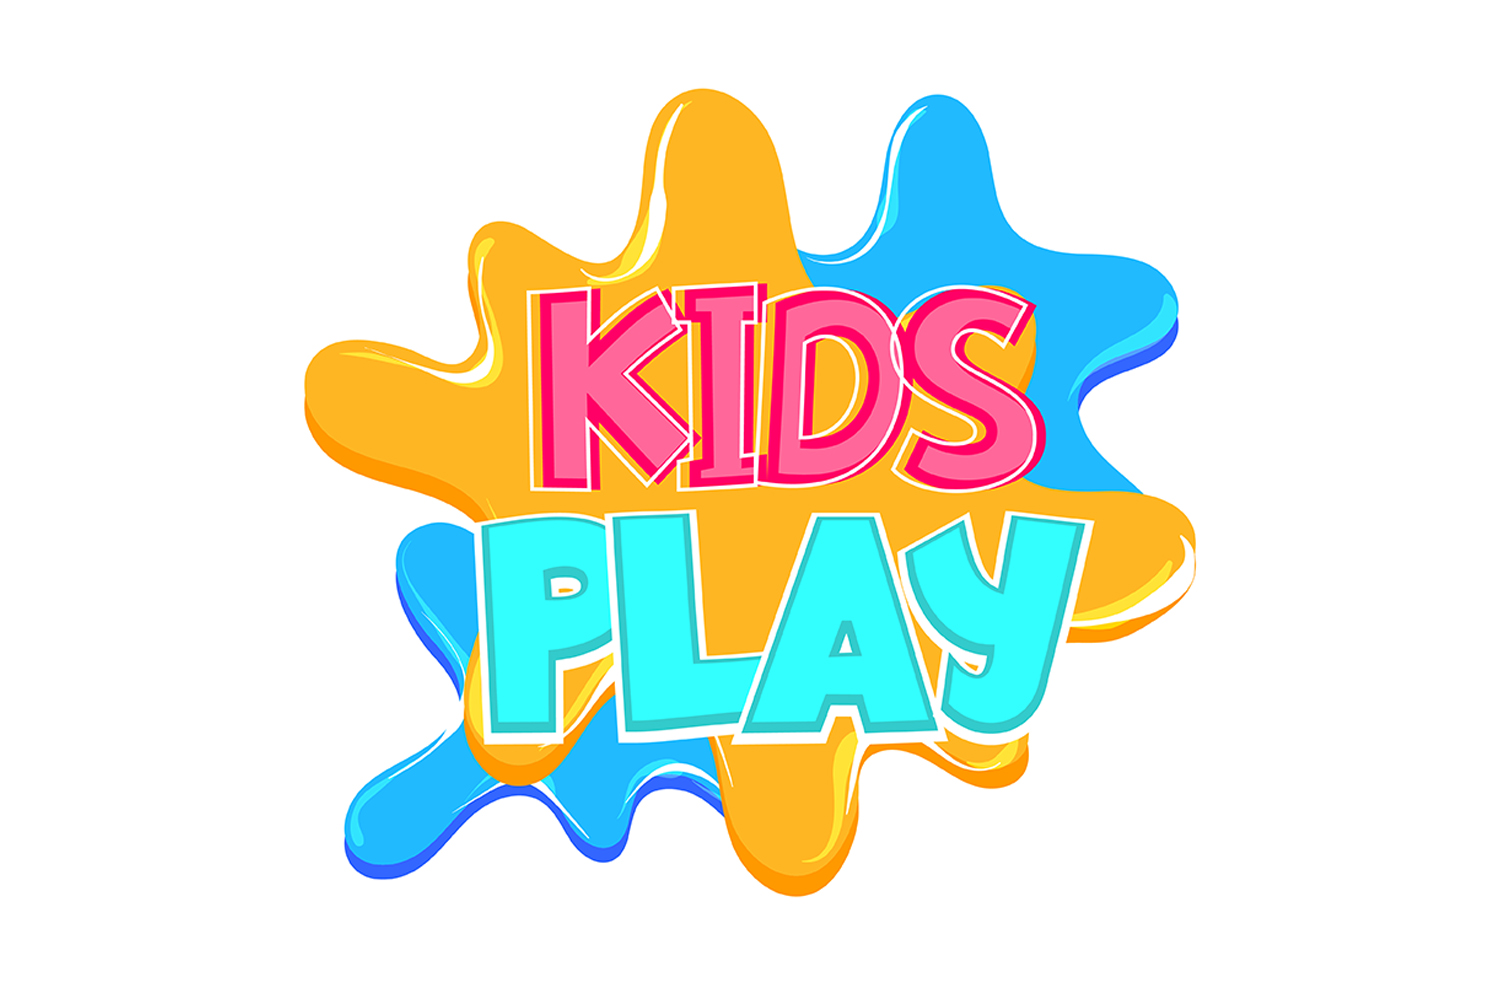 Download Free Kids Play Comic Text Badge Sticker Graphic By Kapitosh for Cricut Explore, Silhouette and other cutting machines.